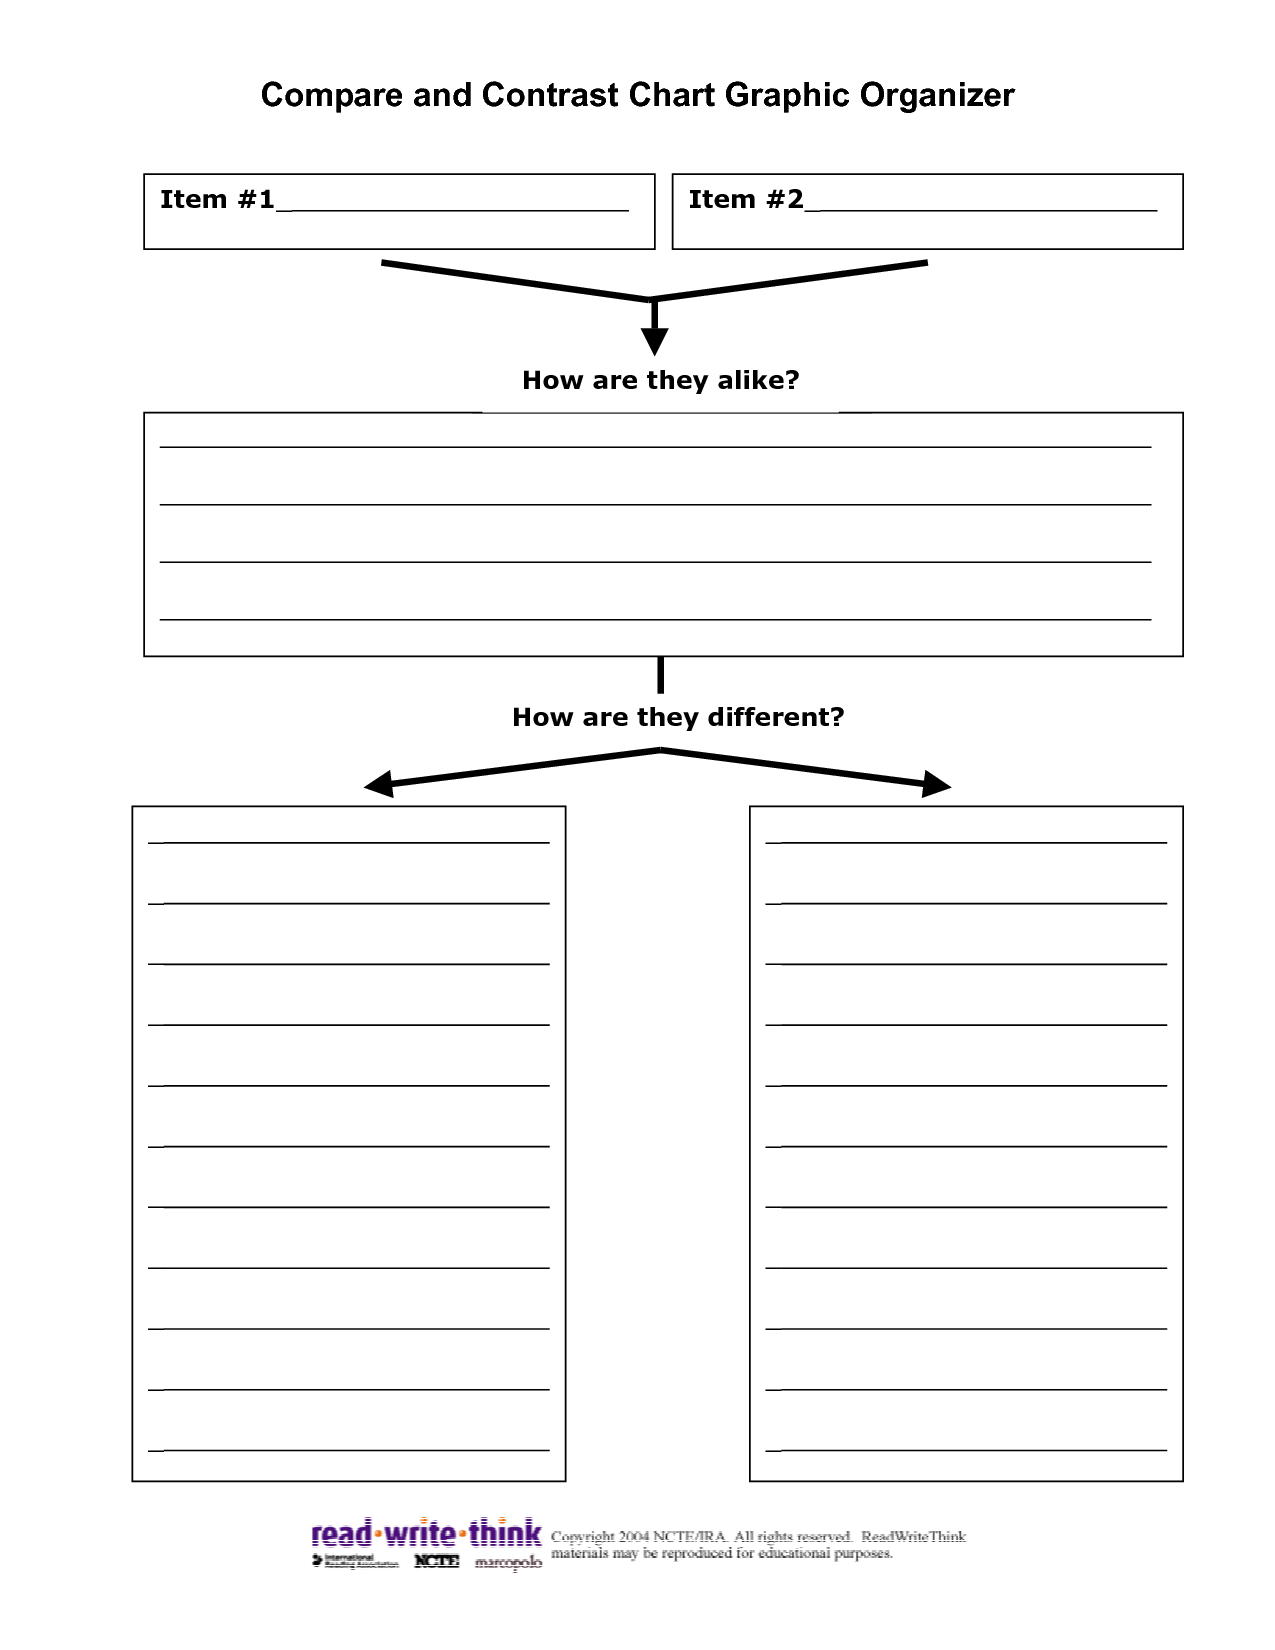 Graphic Organizer for a Compare/Contrast Essay | English Teacher ...